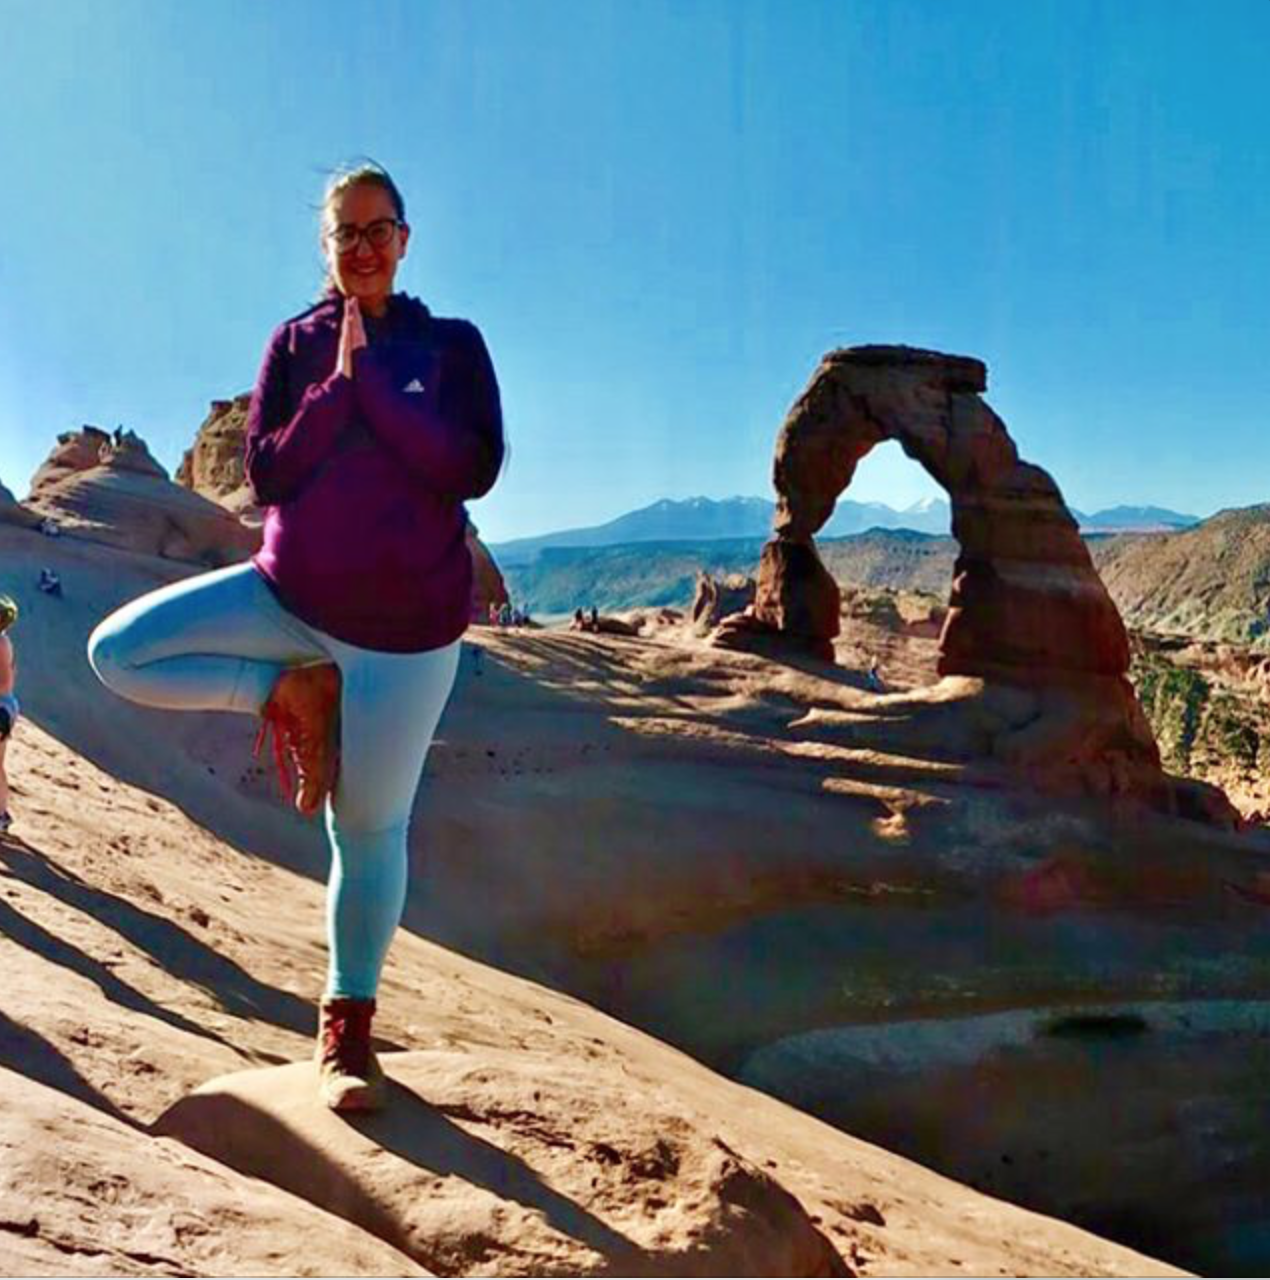 A woman does tree pose by a natural stone arch.